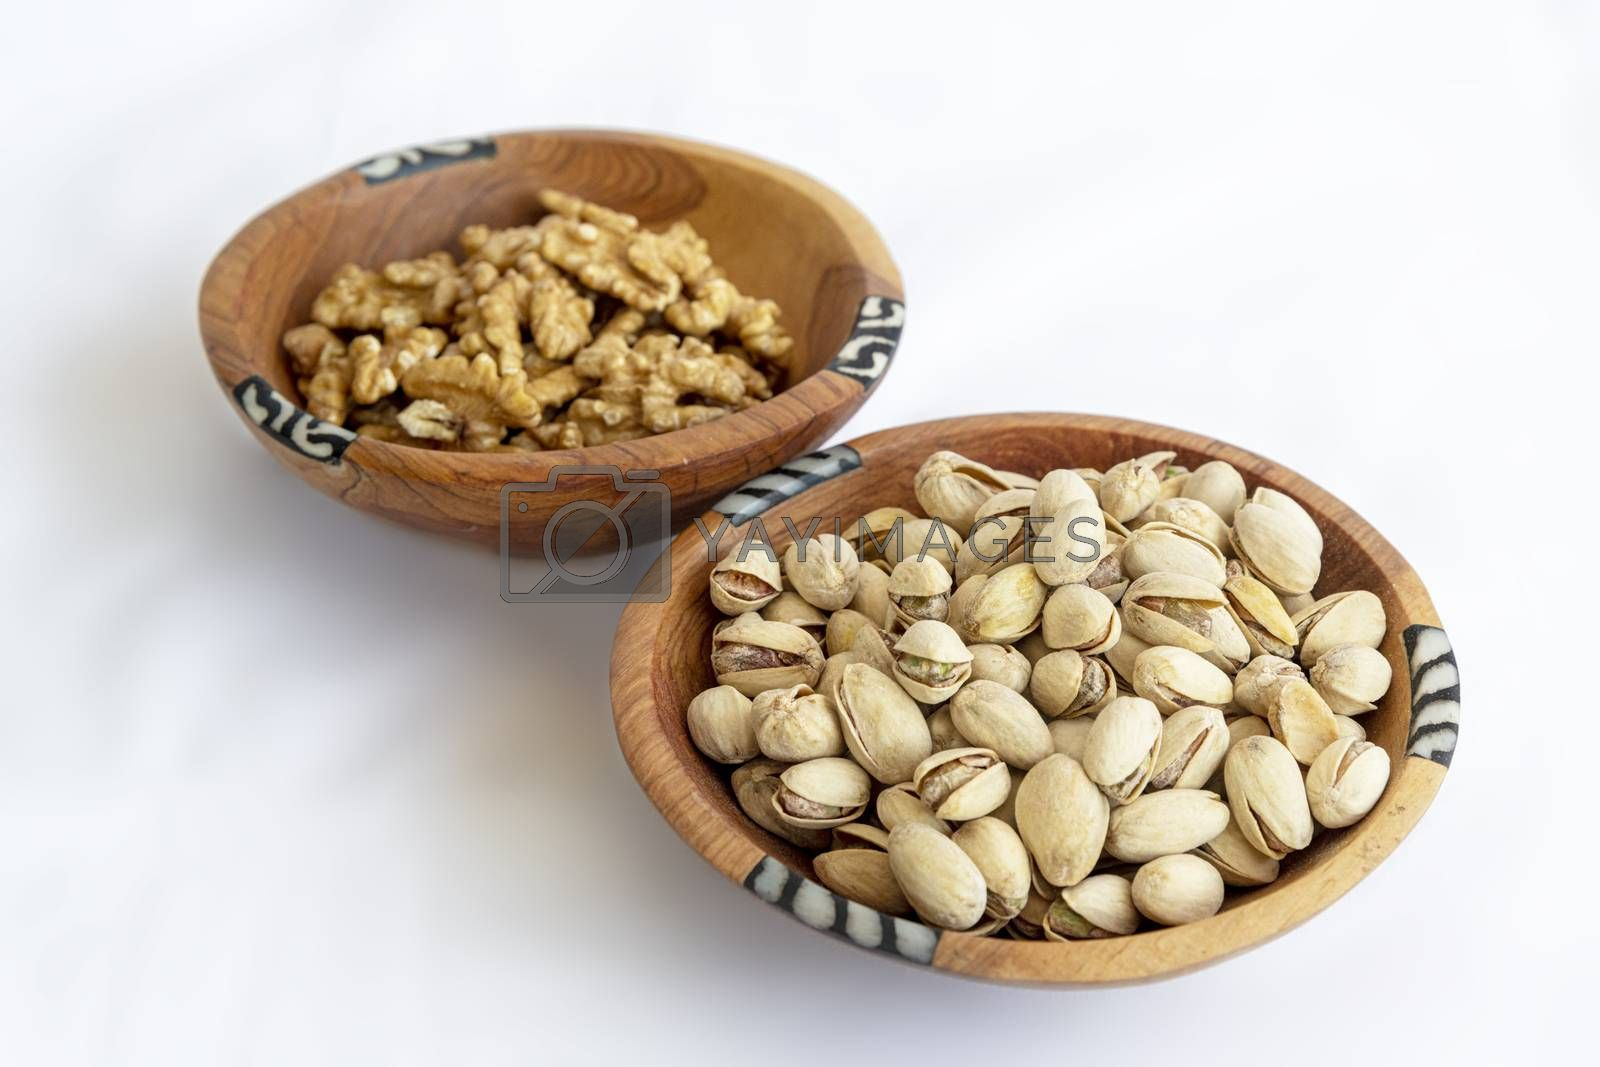 Chestnuts and pistachios in wooden bol as appertiser with drinks against a white background